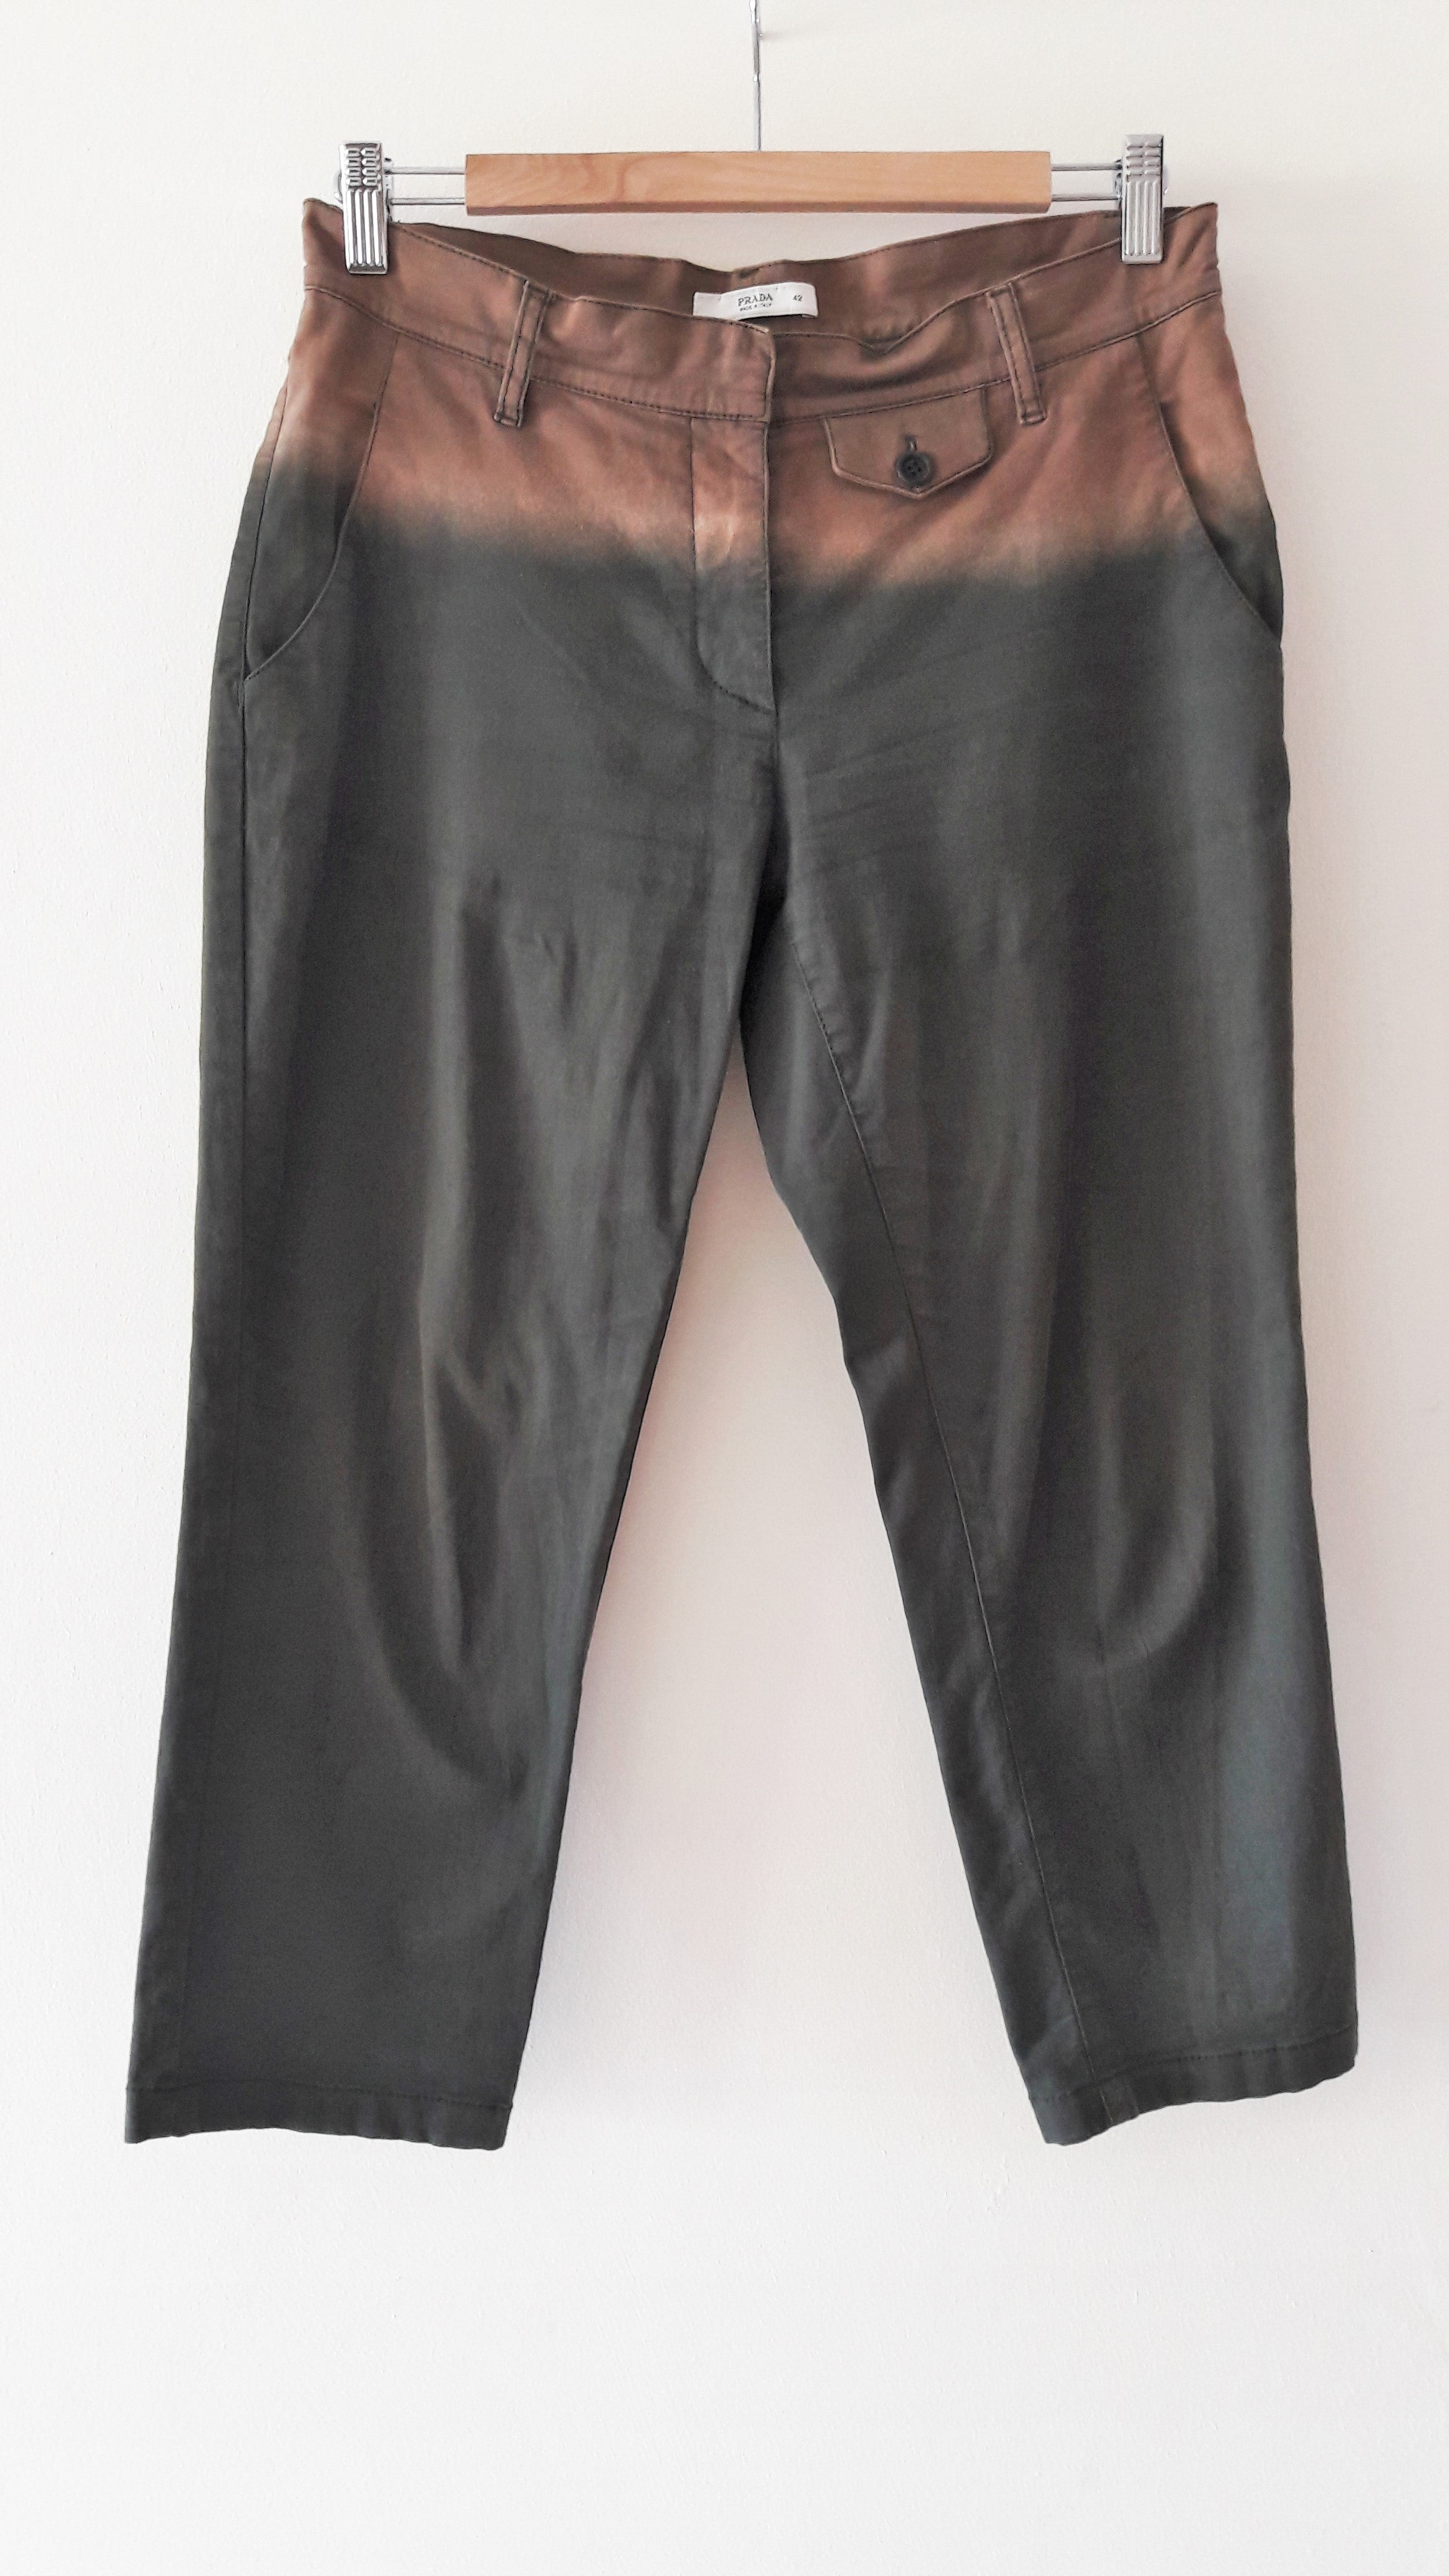 Ombré Prada Cropped Chino Trousers